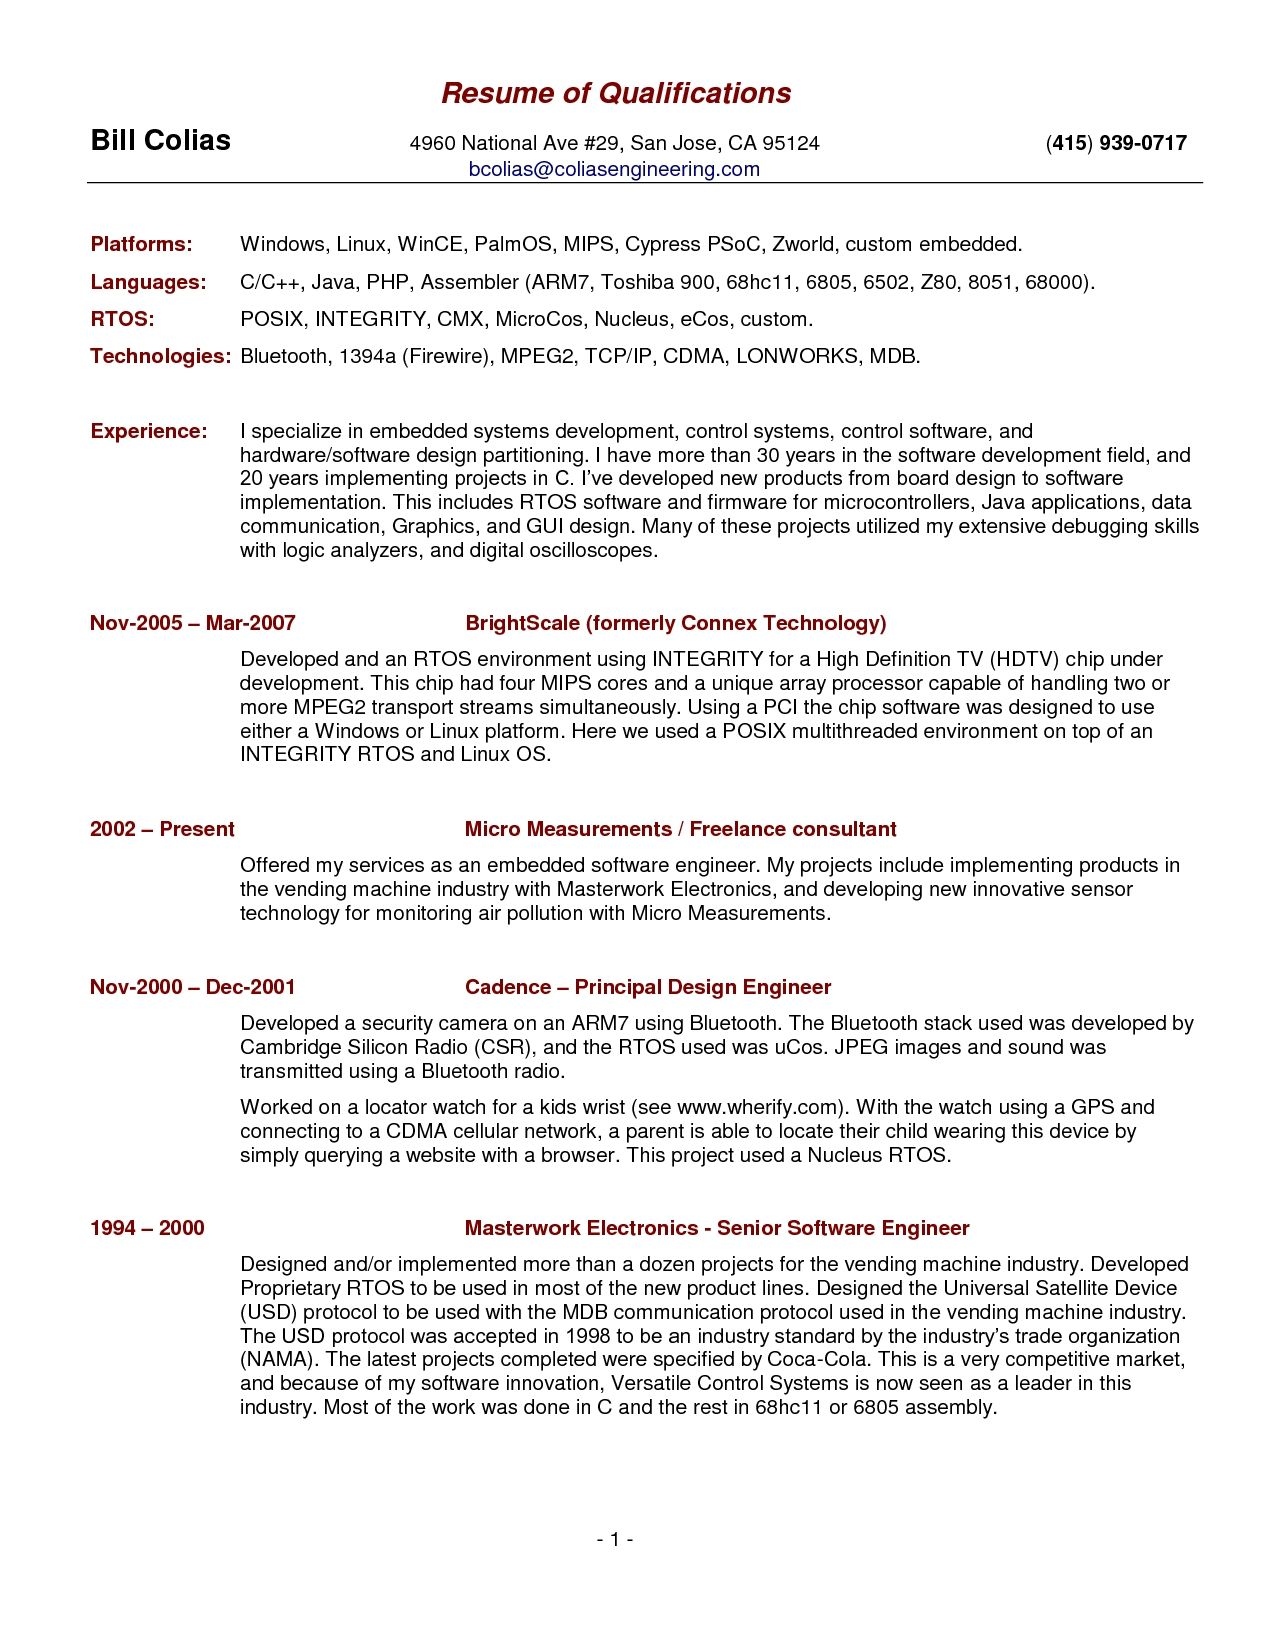 Free Resume Template Summary Qualifications Freeresumetemplates Qualifications Resume Summary Resume Skills Resume Examples Resume Template Professional